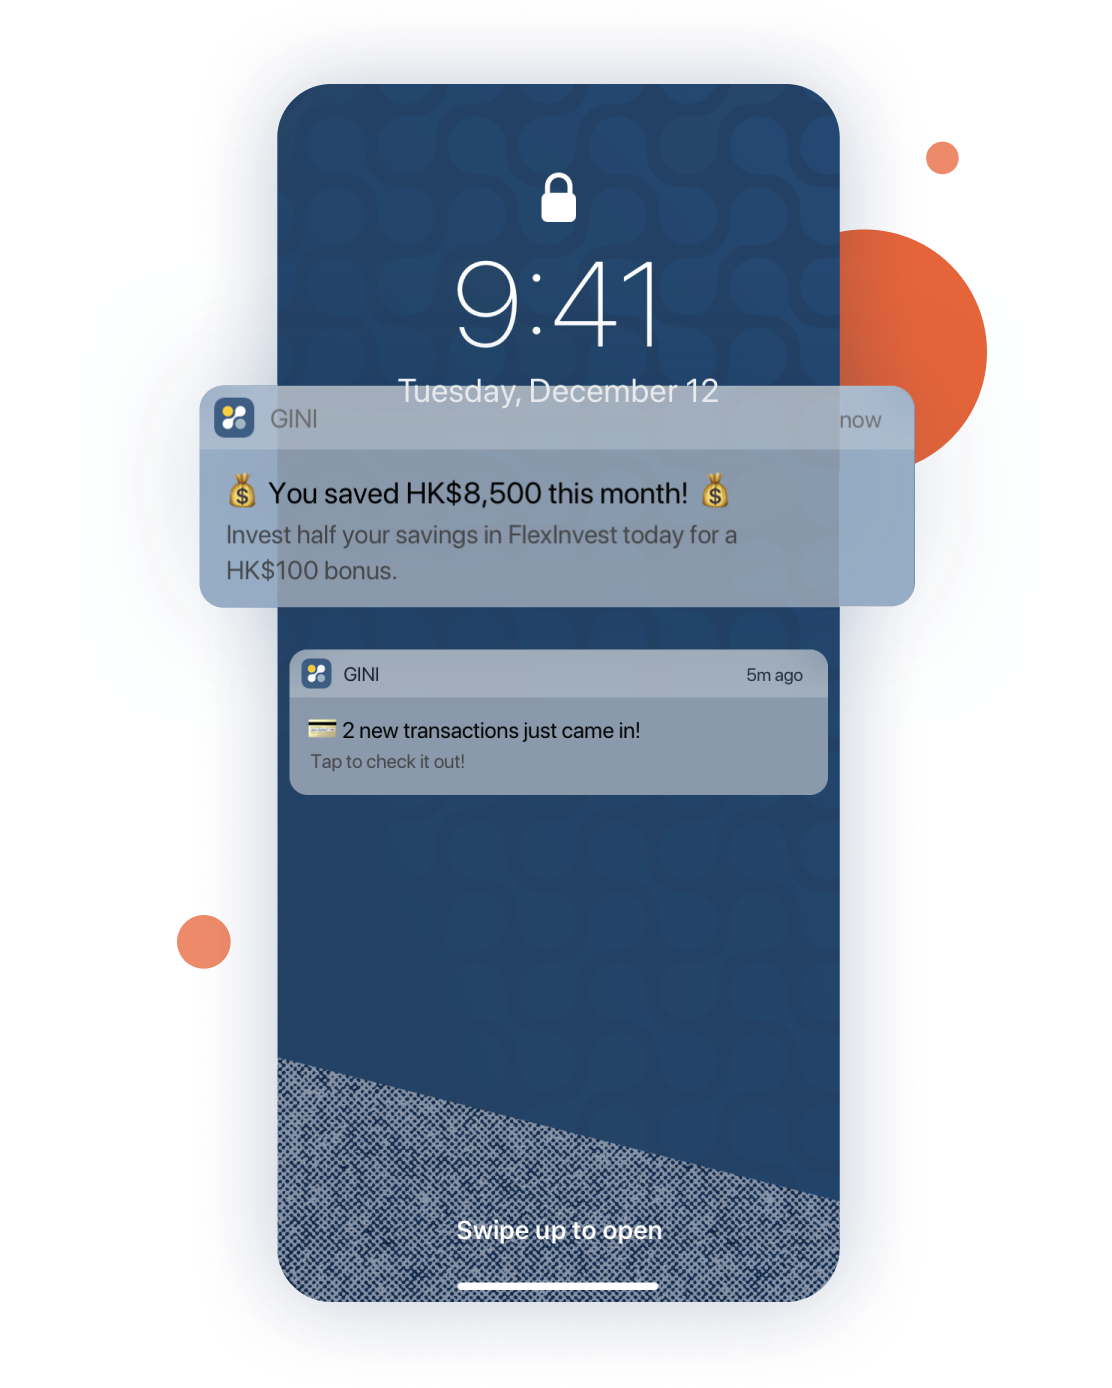 Send well-timed personalised nudges and notifications to your customers' phones to prompt immediate action